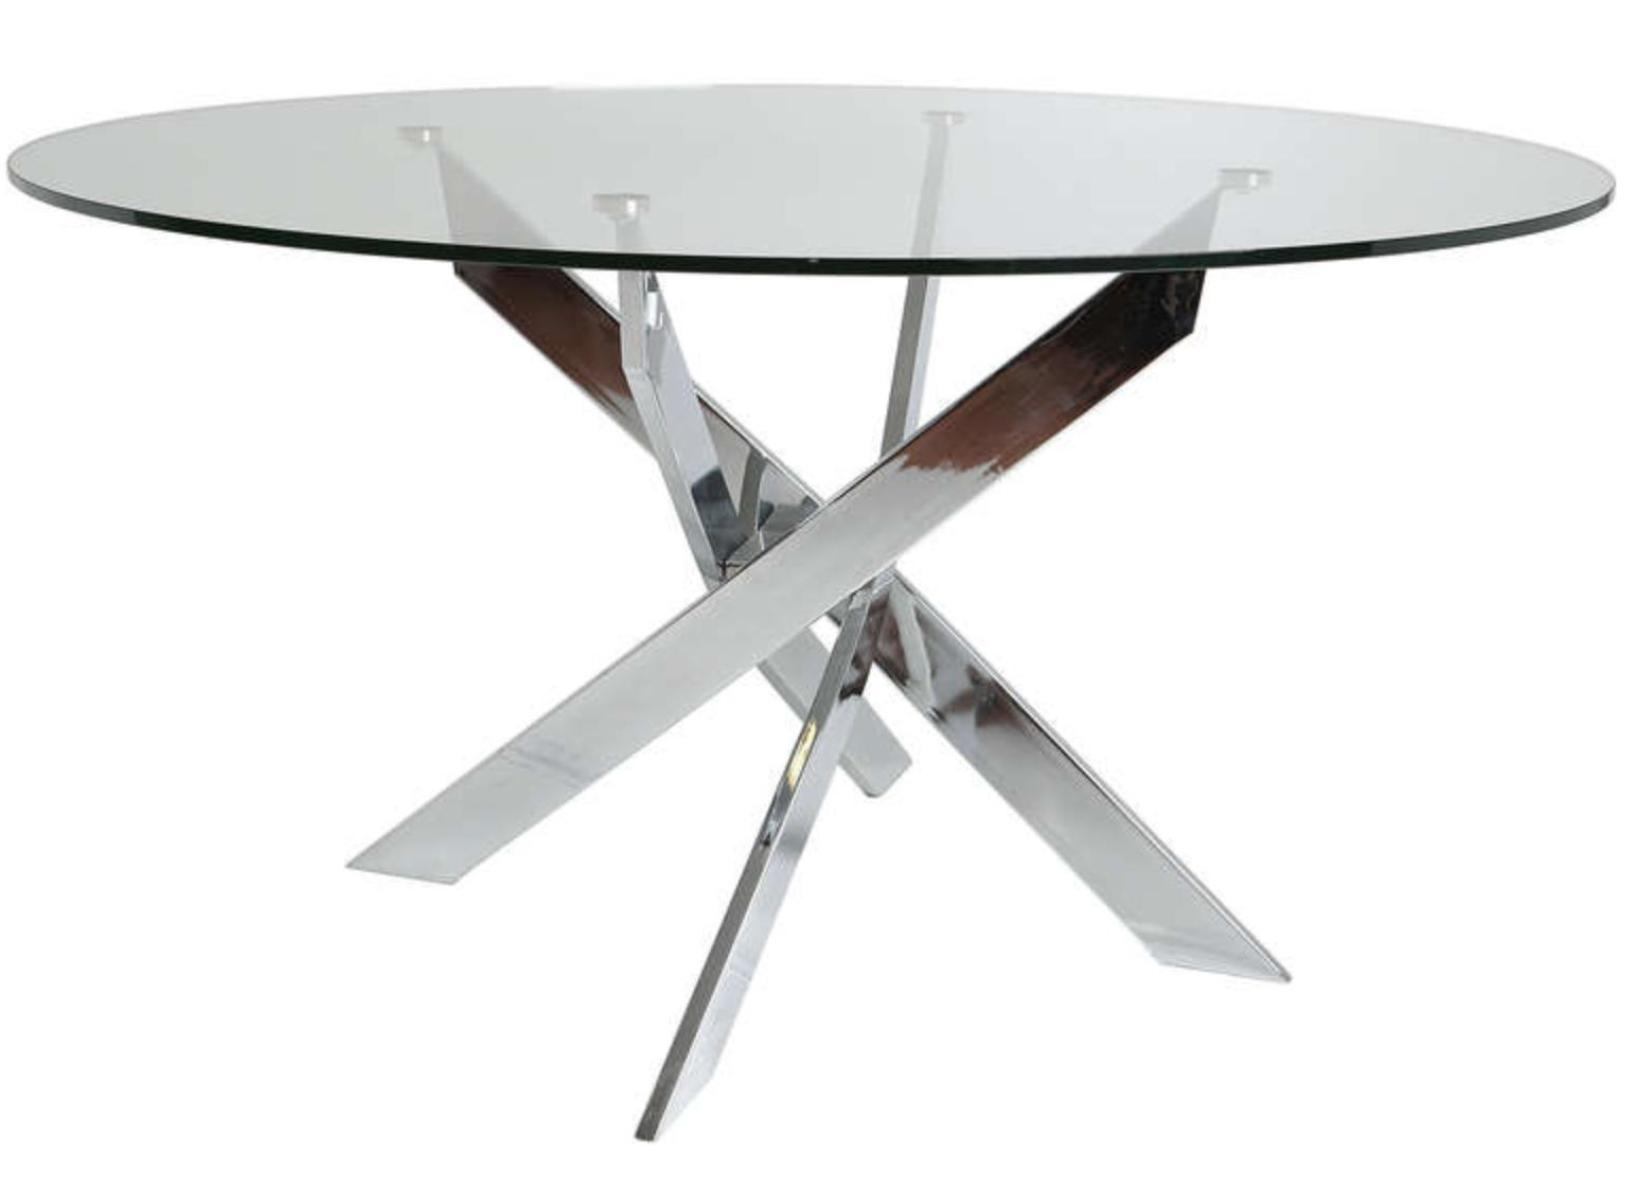 118 table basse ronde en verre table basse design en - Table basse ronde en verre design ...